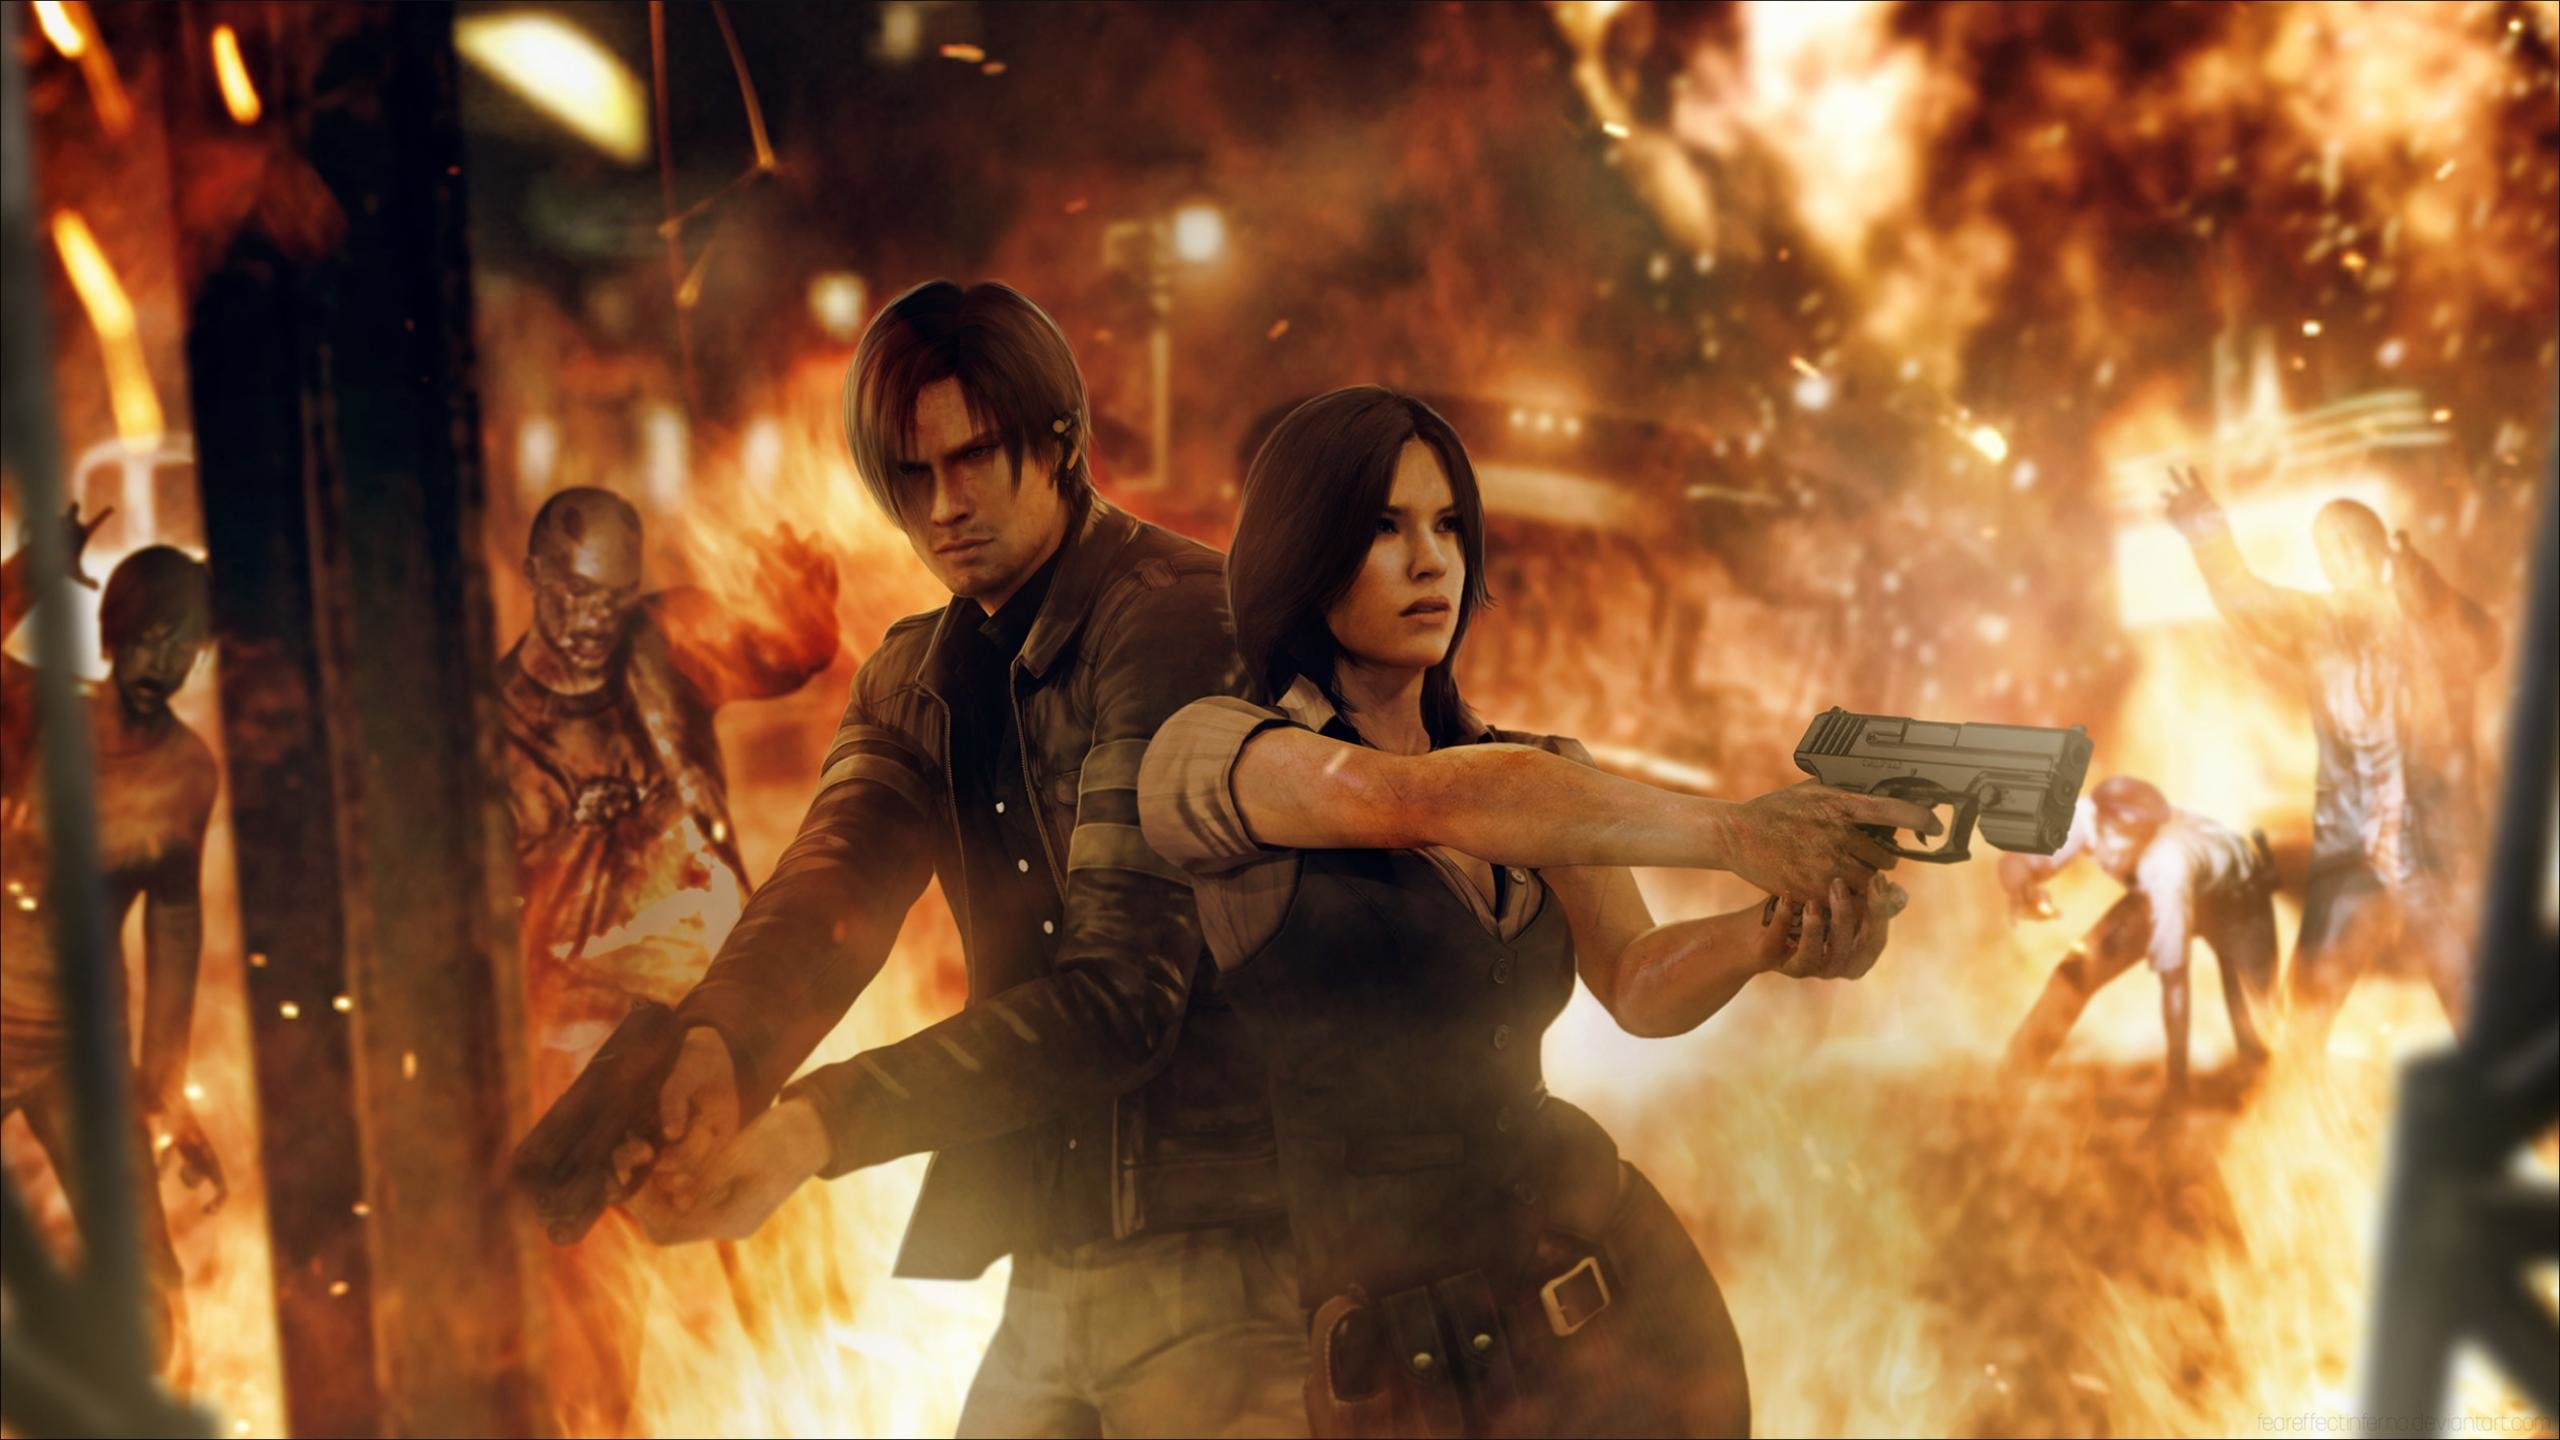 Resident Evil 6 Wallpapers Hd For Desktop Backgrounds